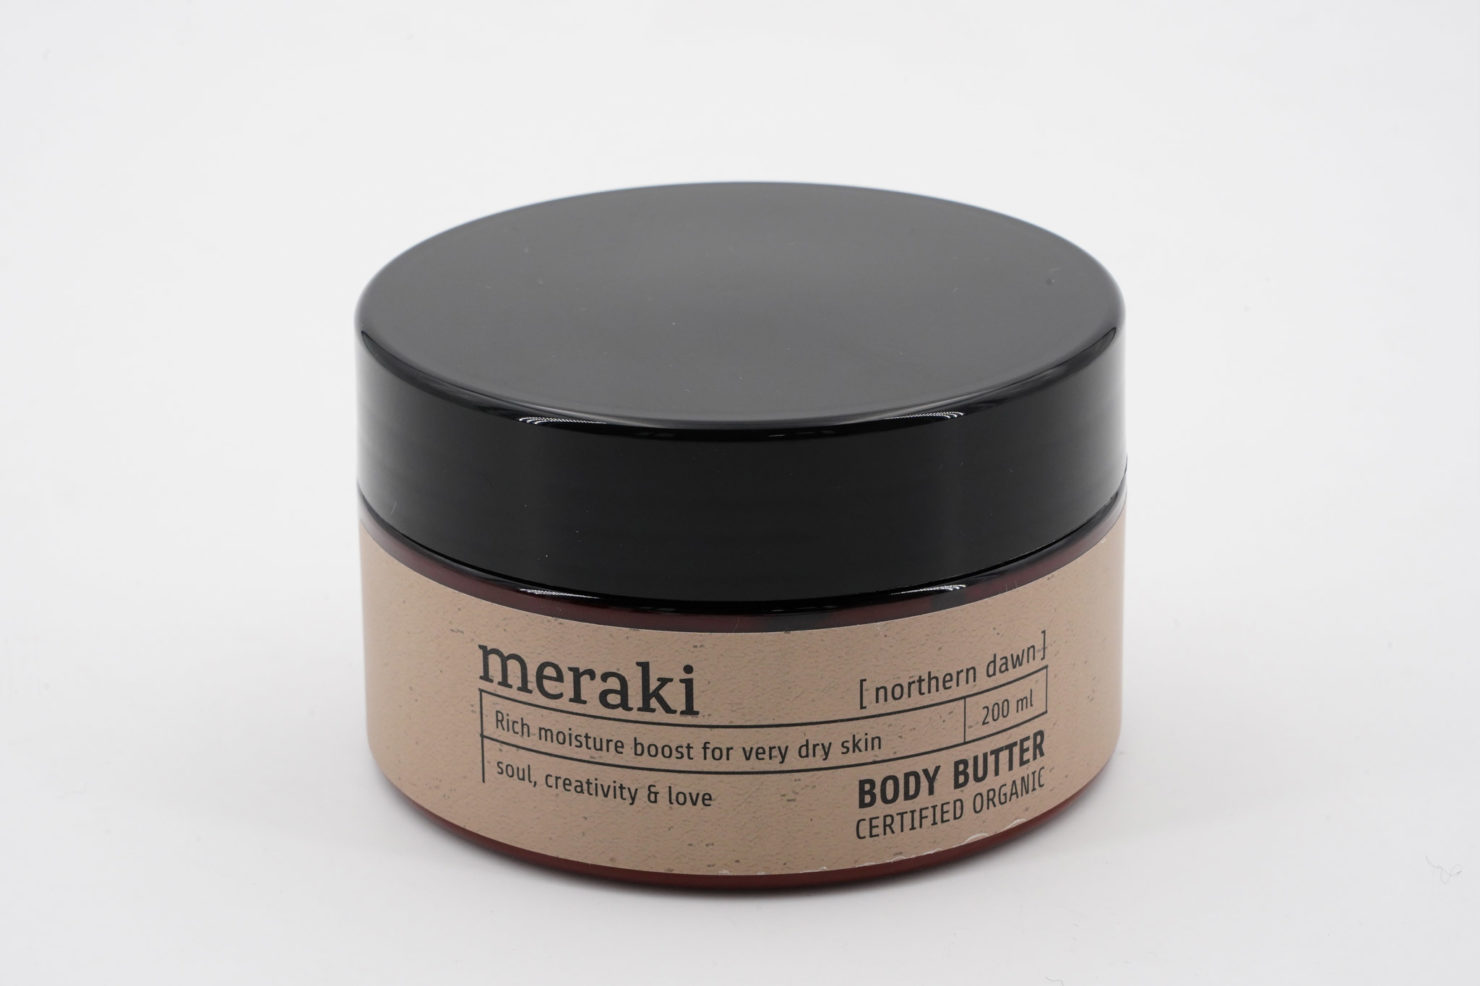 BODY BUTTER NORTHERN DAWN 200 ML - MERAKI